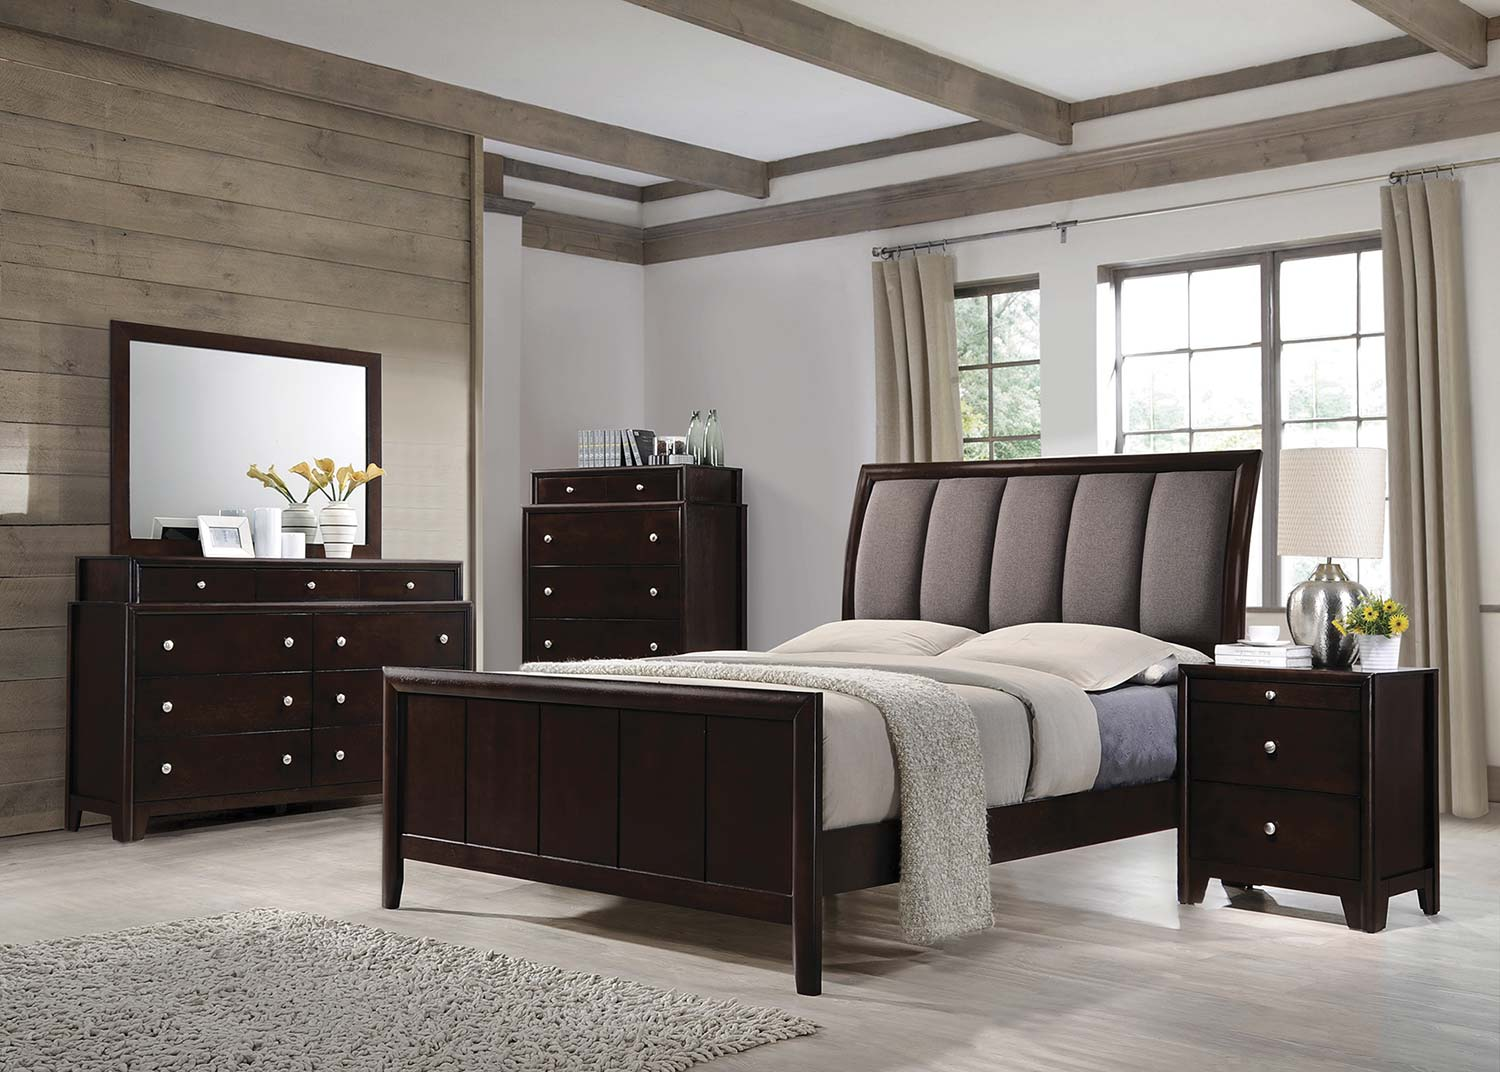 Coaster Madison Upholstered Bedroom Set - Dark Merlot